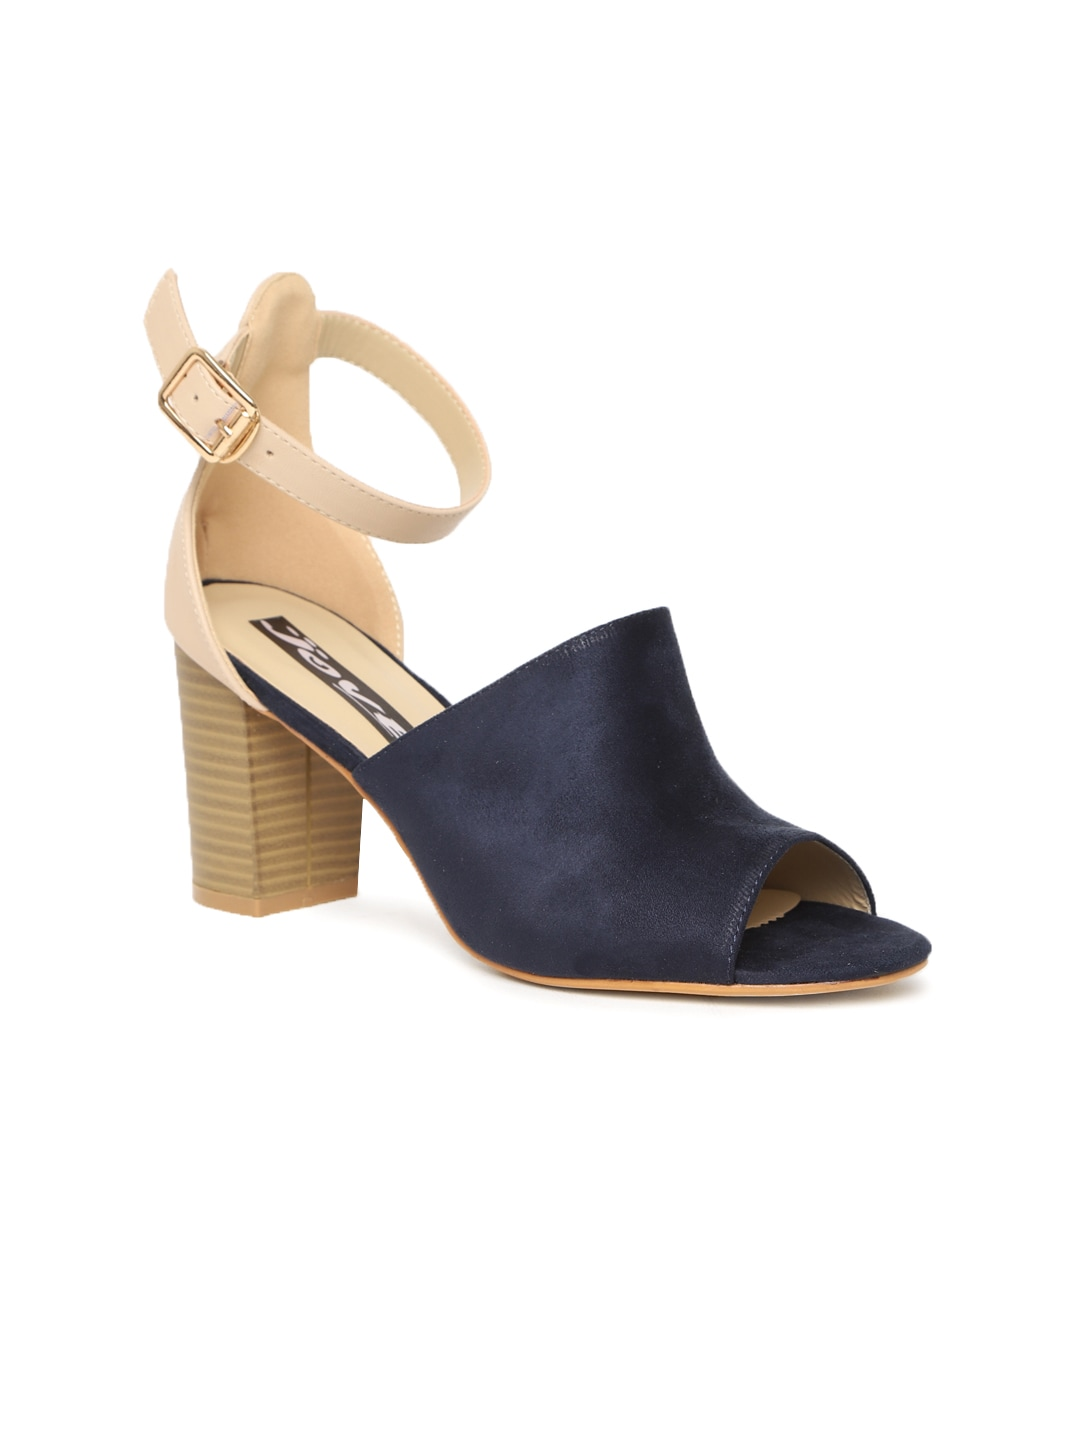 Jove Navy Blue Belly Shoes for women - Get stylish shoes ...